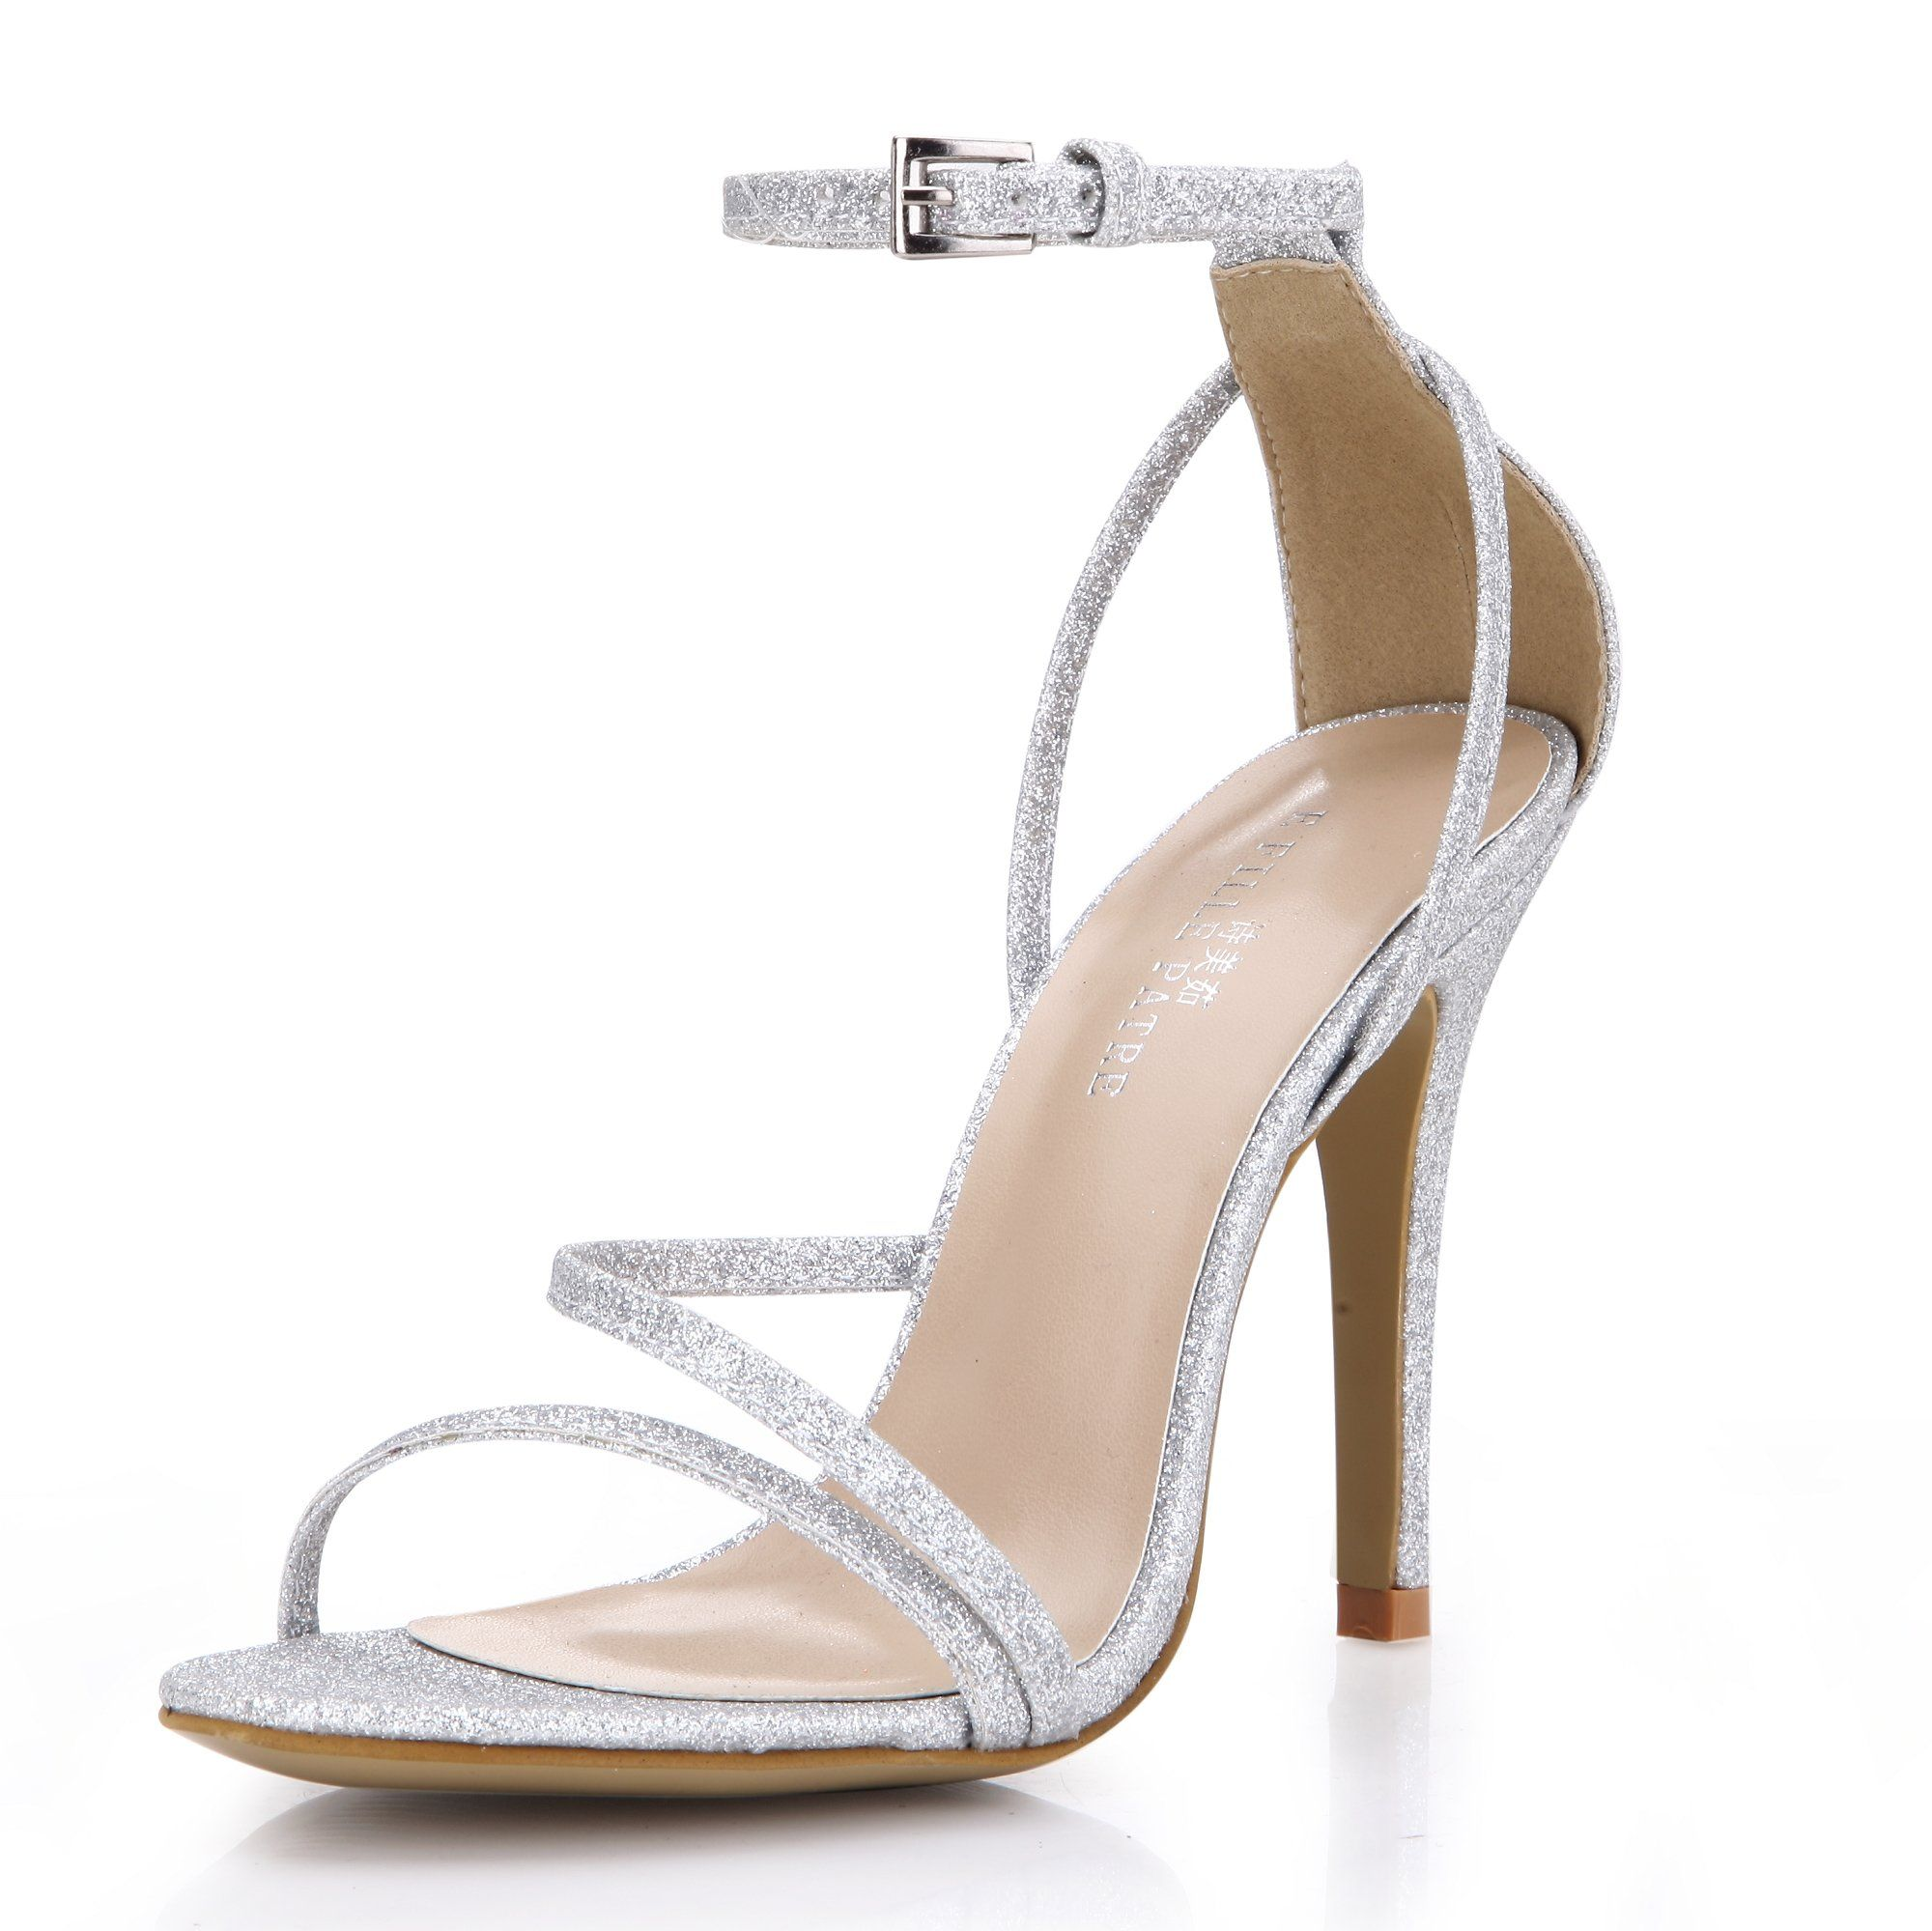 b998ff90cf4cc Dolphin Girl Women Extreme High Fashion Silver Simple Elegant Classic Open  Toe Sandal Dress Pump Heeled Thin Heels Strap Buckle Ankle Strap Strappy  Slightly ...